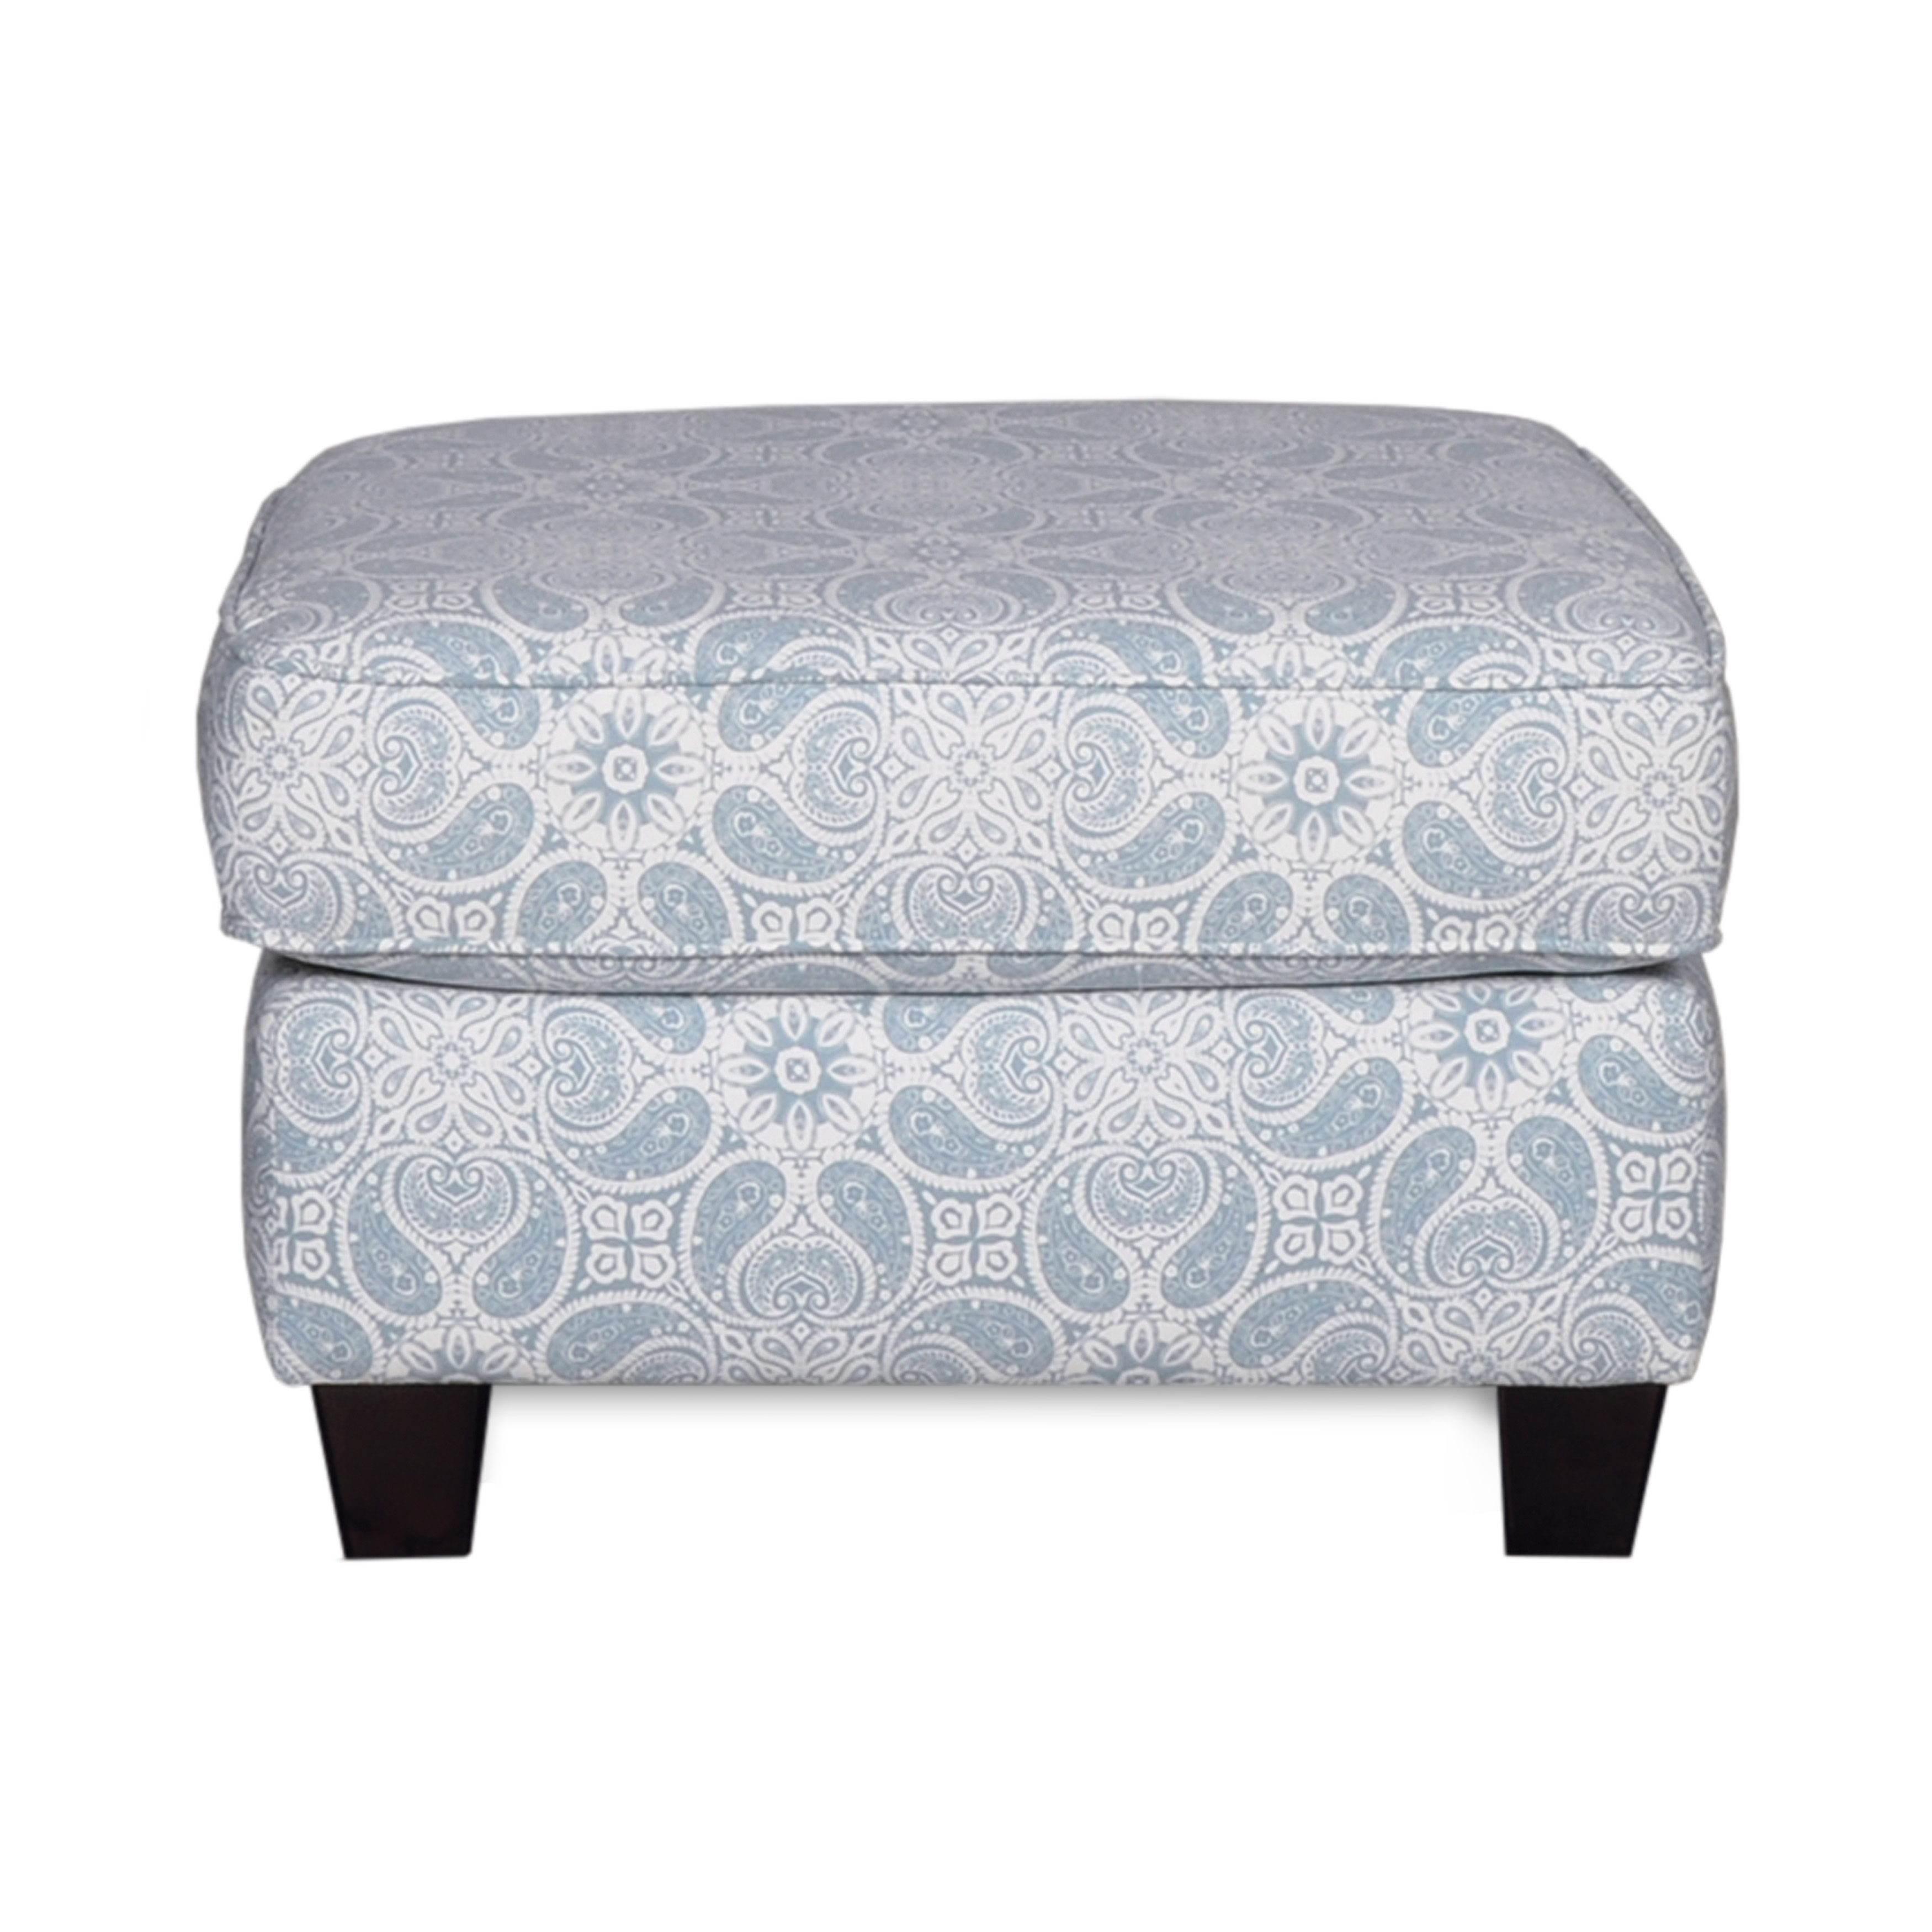 Living Room Ottoman - Upholstered Fabric Contemporary Casual Accent Design to Match Armchair, Loveseat, or Sofa Couch